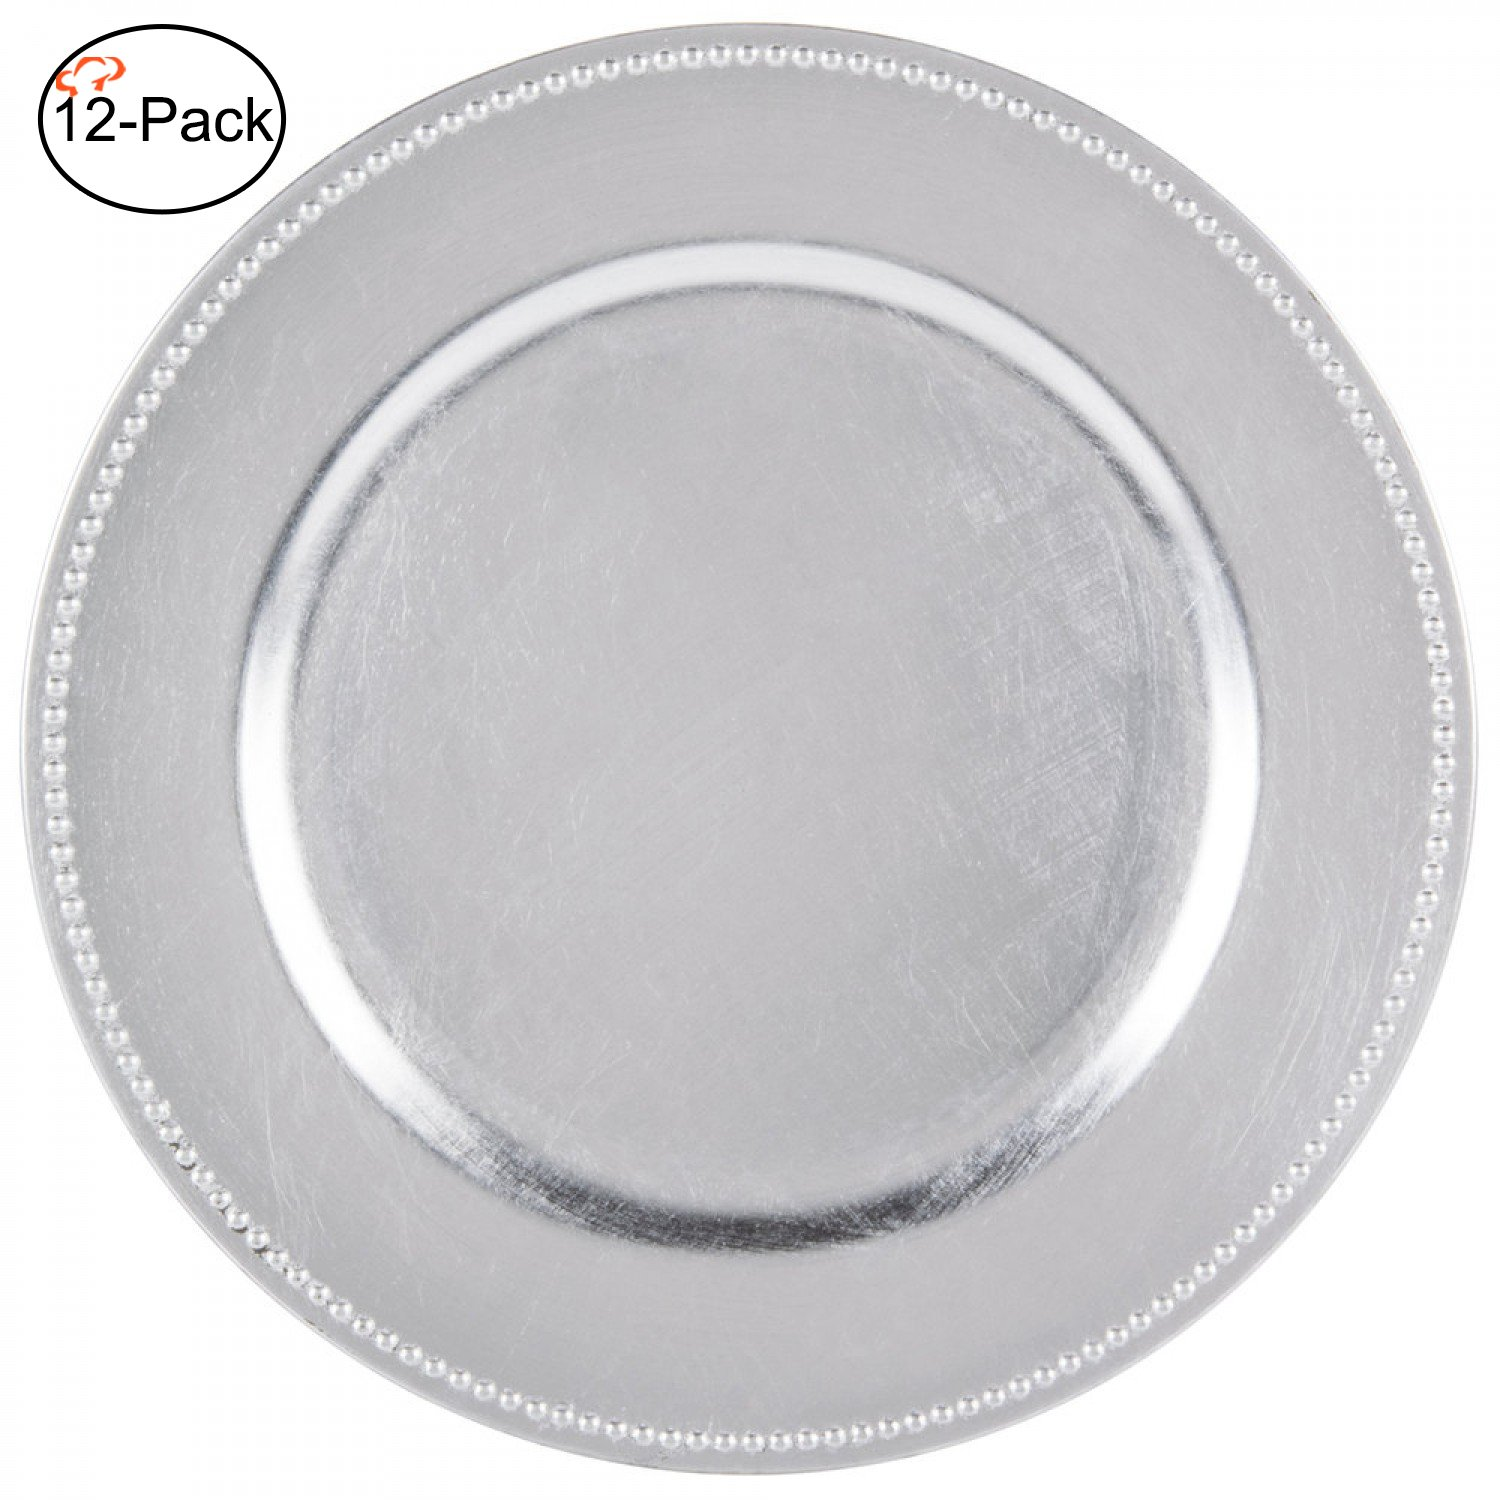 Tiger Chef 13-inch Silver Round Beaded Charger Plates, Set of 2,4,6, 12 or 24 Dinner Chargers (12-Pack Silver Chargers Plates)